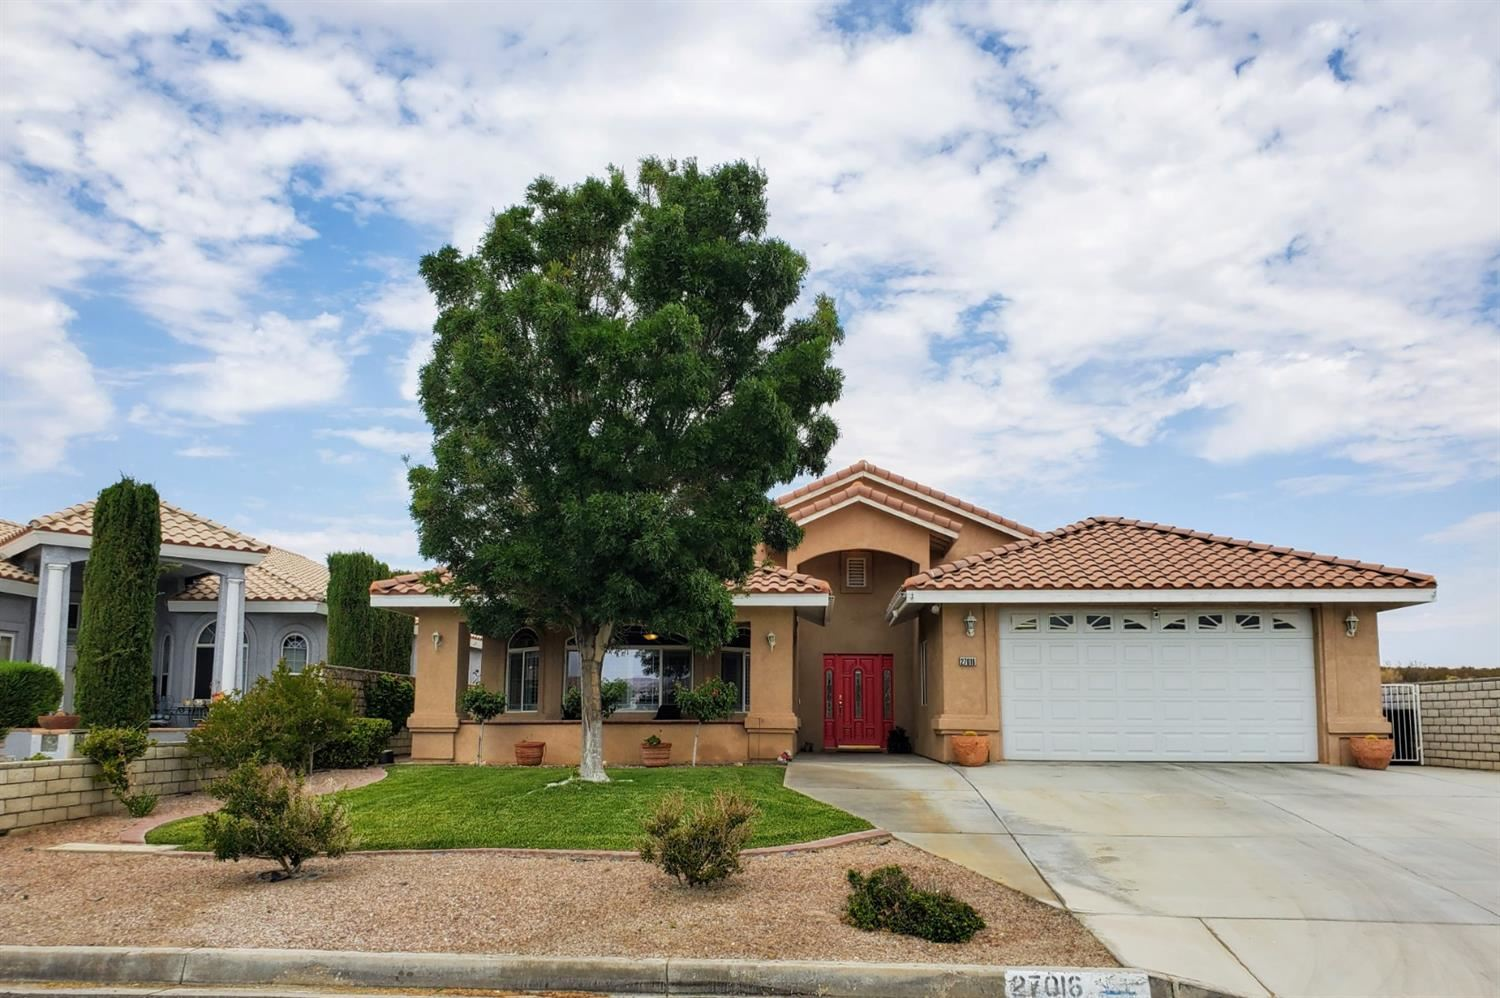 27016 Silver Lakes Parkway, Helendale, CA 92342 - #: 536323